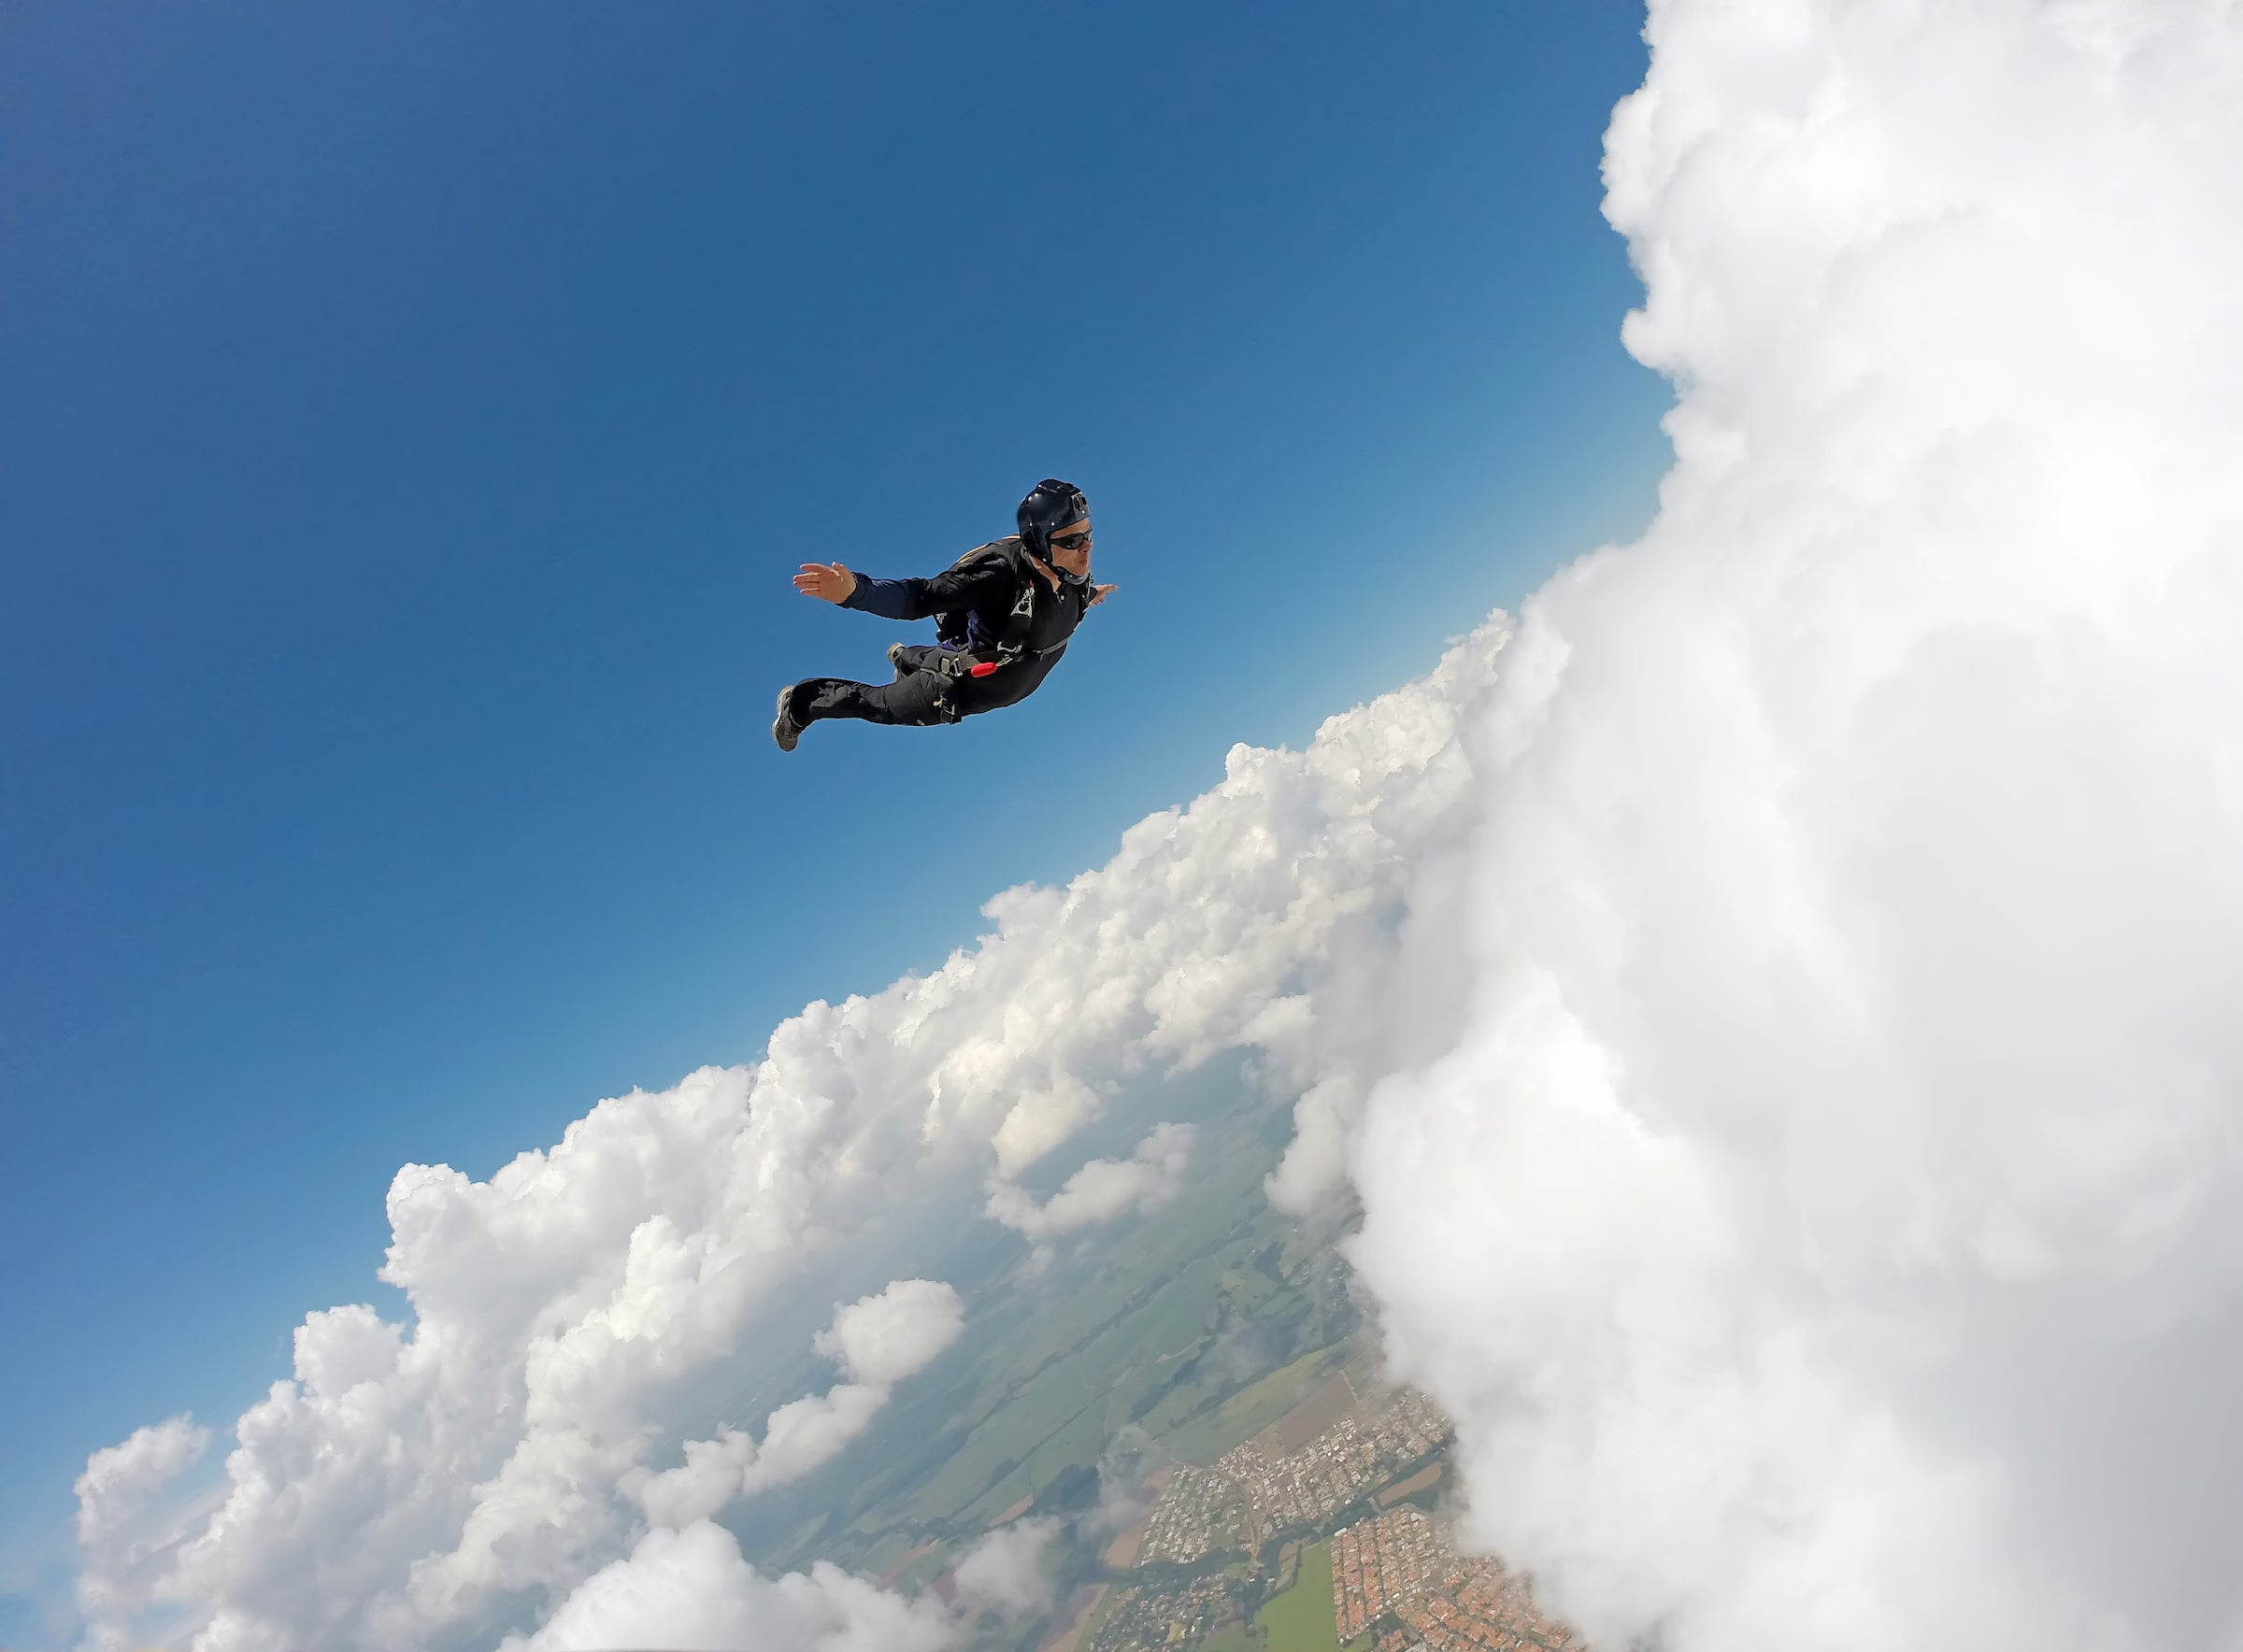 Club Fearless Test #2 Skydive Solo from 12,000 Feet or Higher